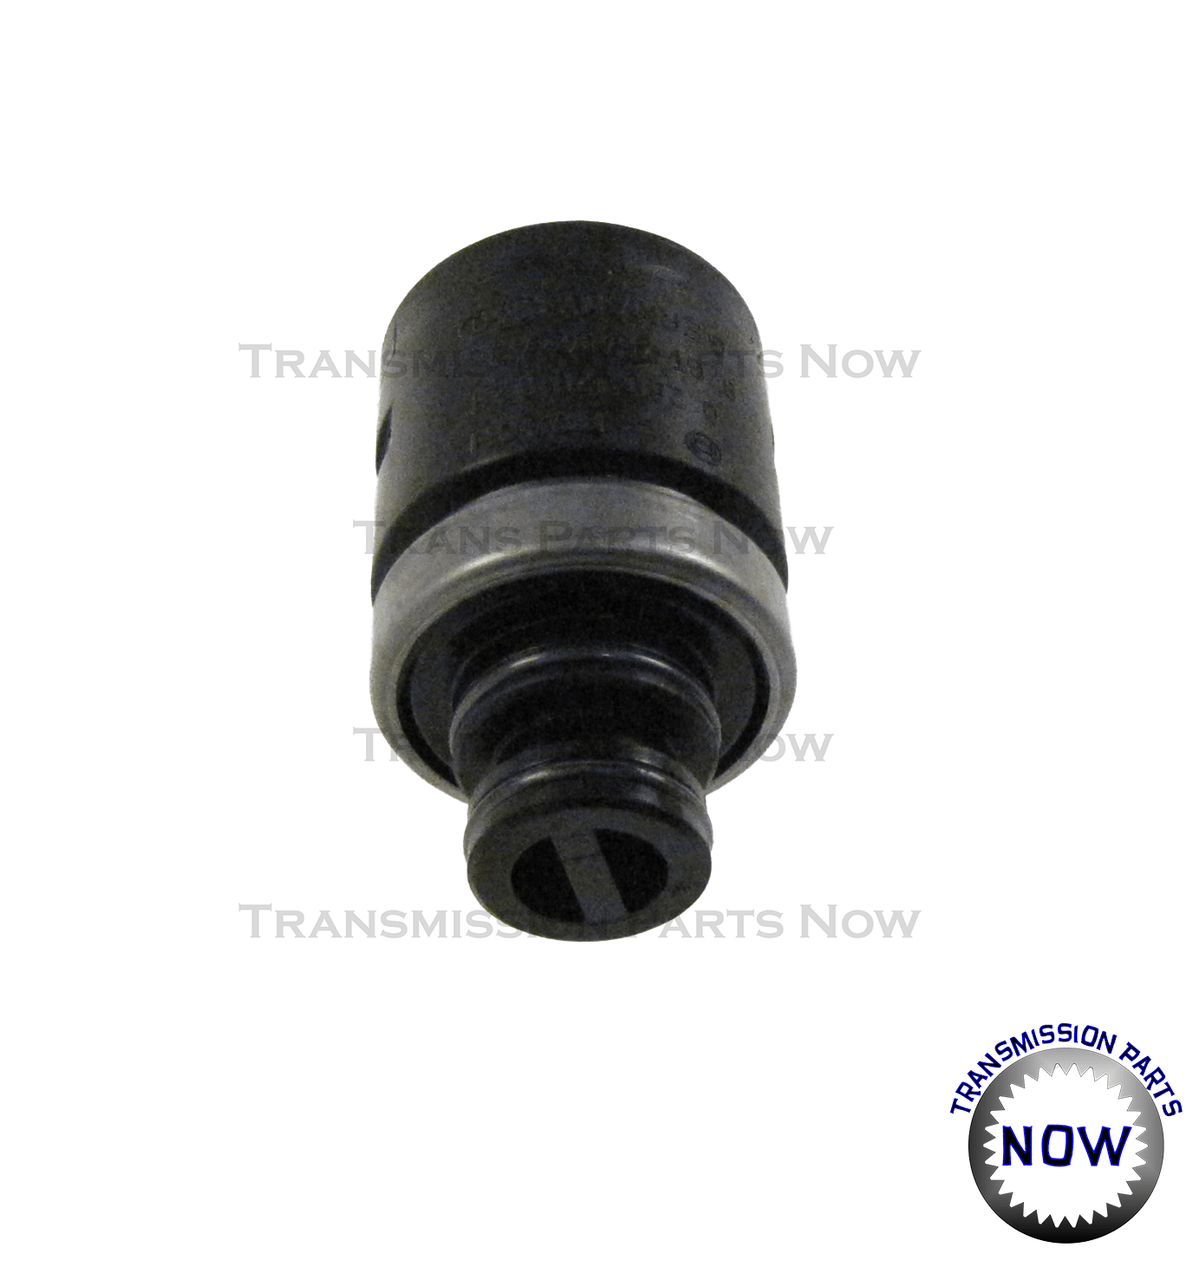 medium resolution of shift coast clutch solenoid 4r55e 5r55e 95 up transmission further toyota pickup transmission diagram on 4r55e solenoid diagram